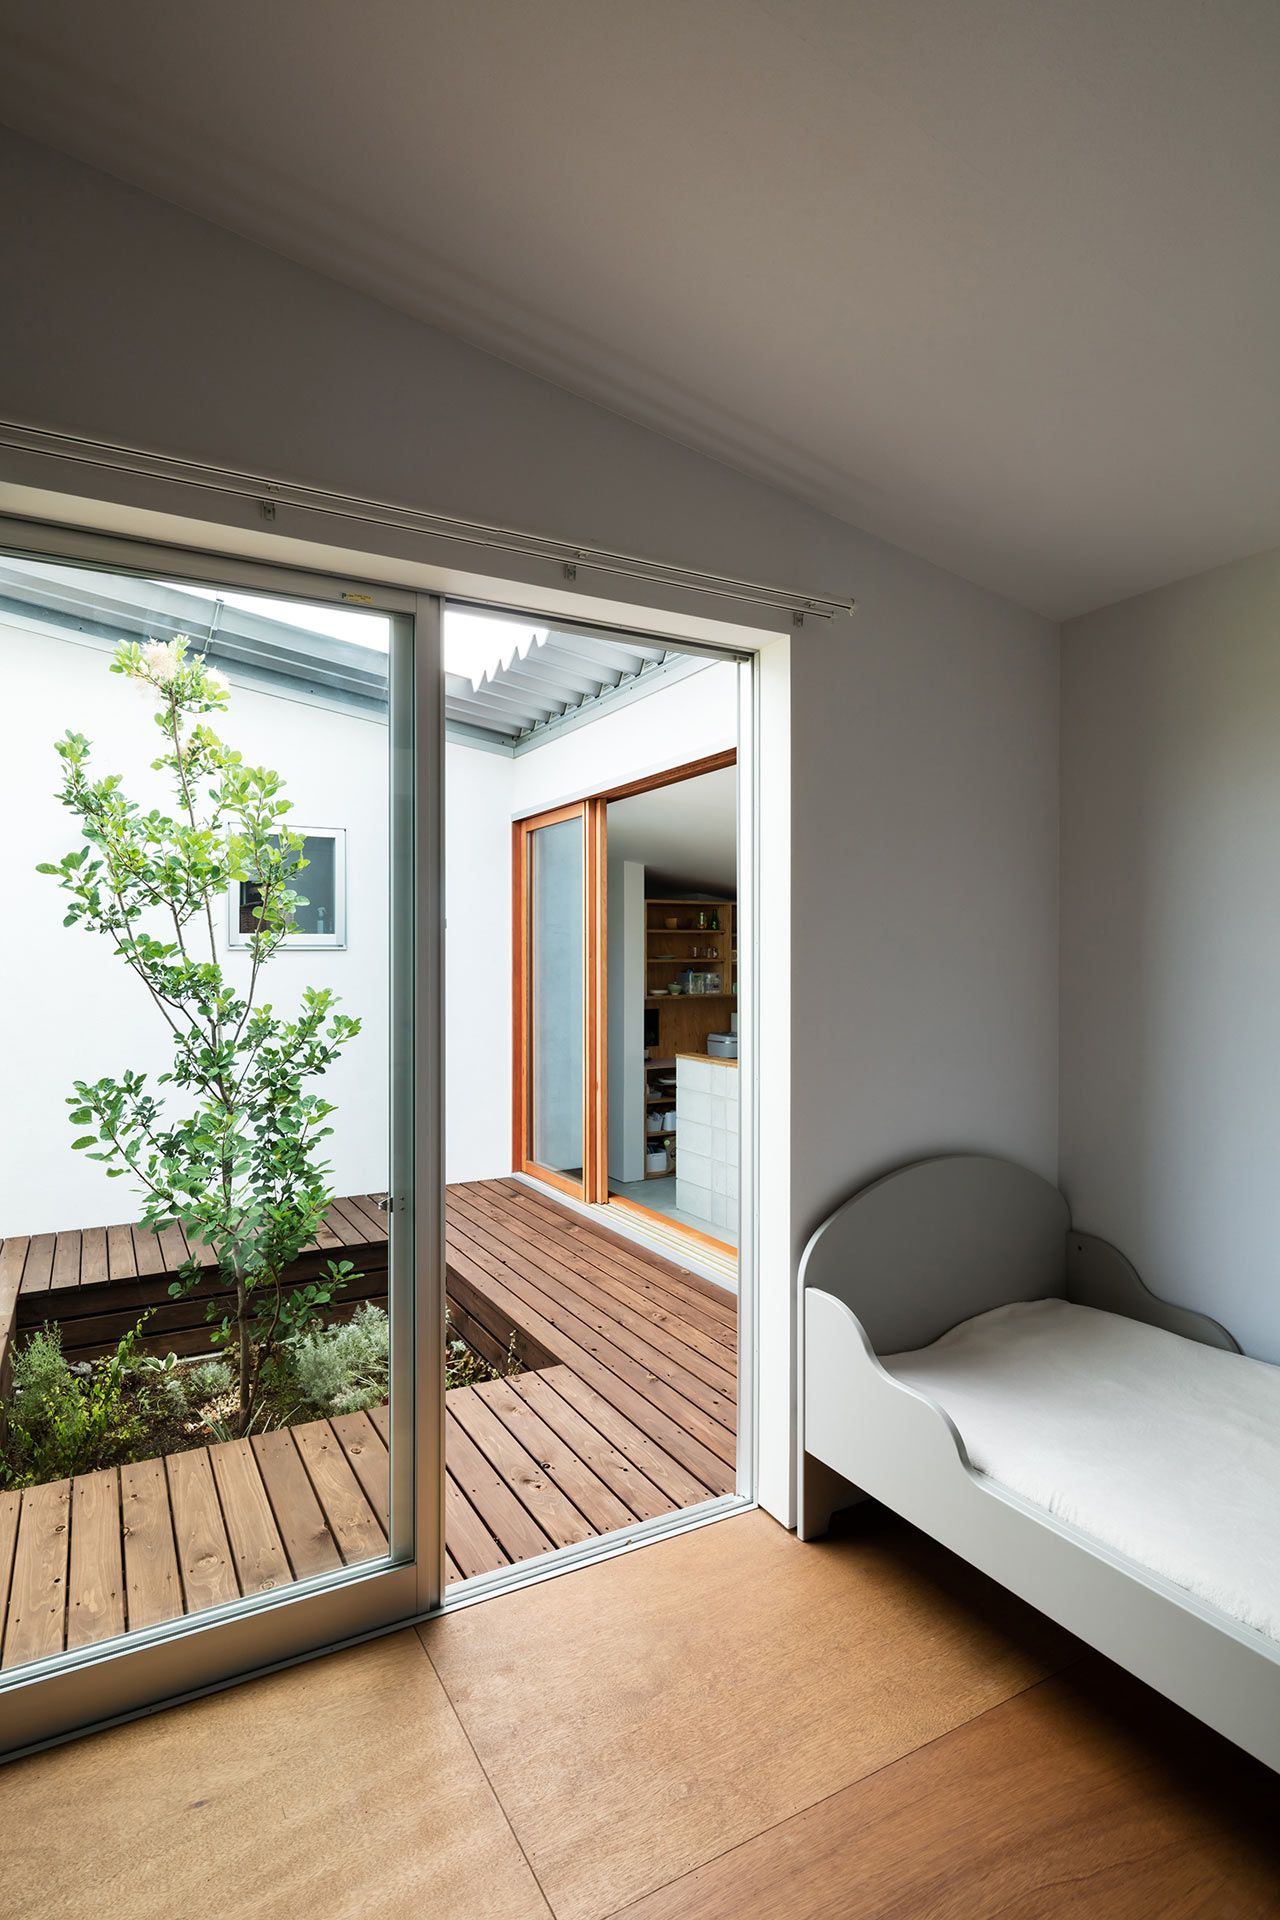 A U-Shaped House in Osaka That Opens up to a Green Landscape ... on u shaped kitchen countertops, u shaped pools, u shaped kitchen backsplash,